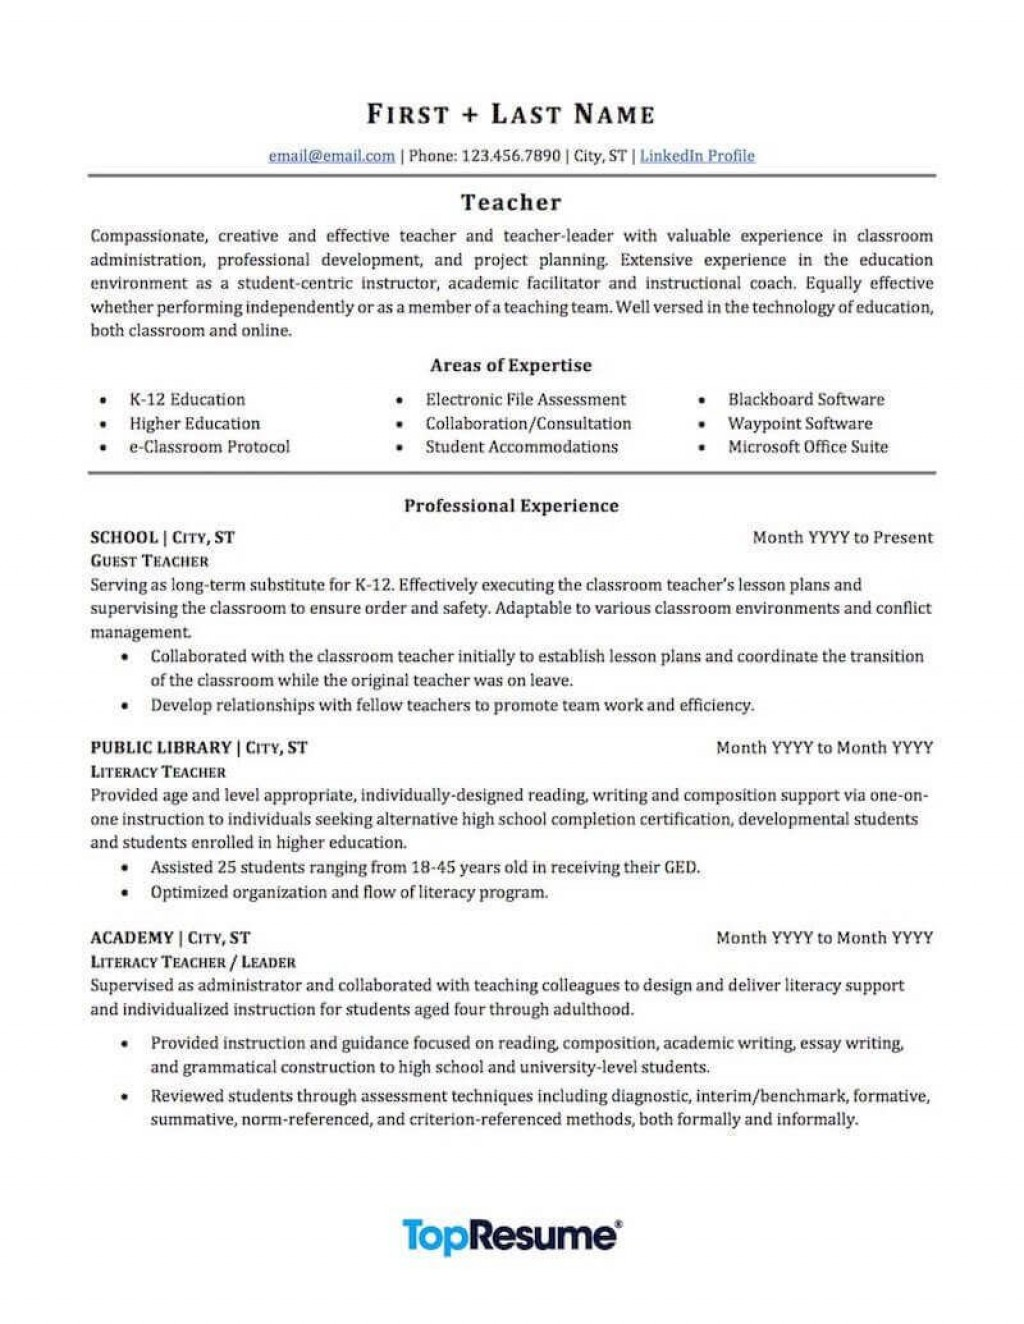 005 Awful Good Resume For Teaching Job High Resolution  Sample Teacher Fresher In IndiaLarge